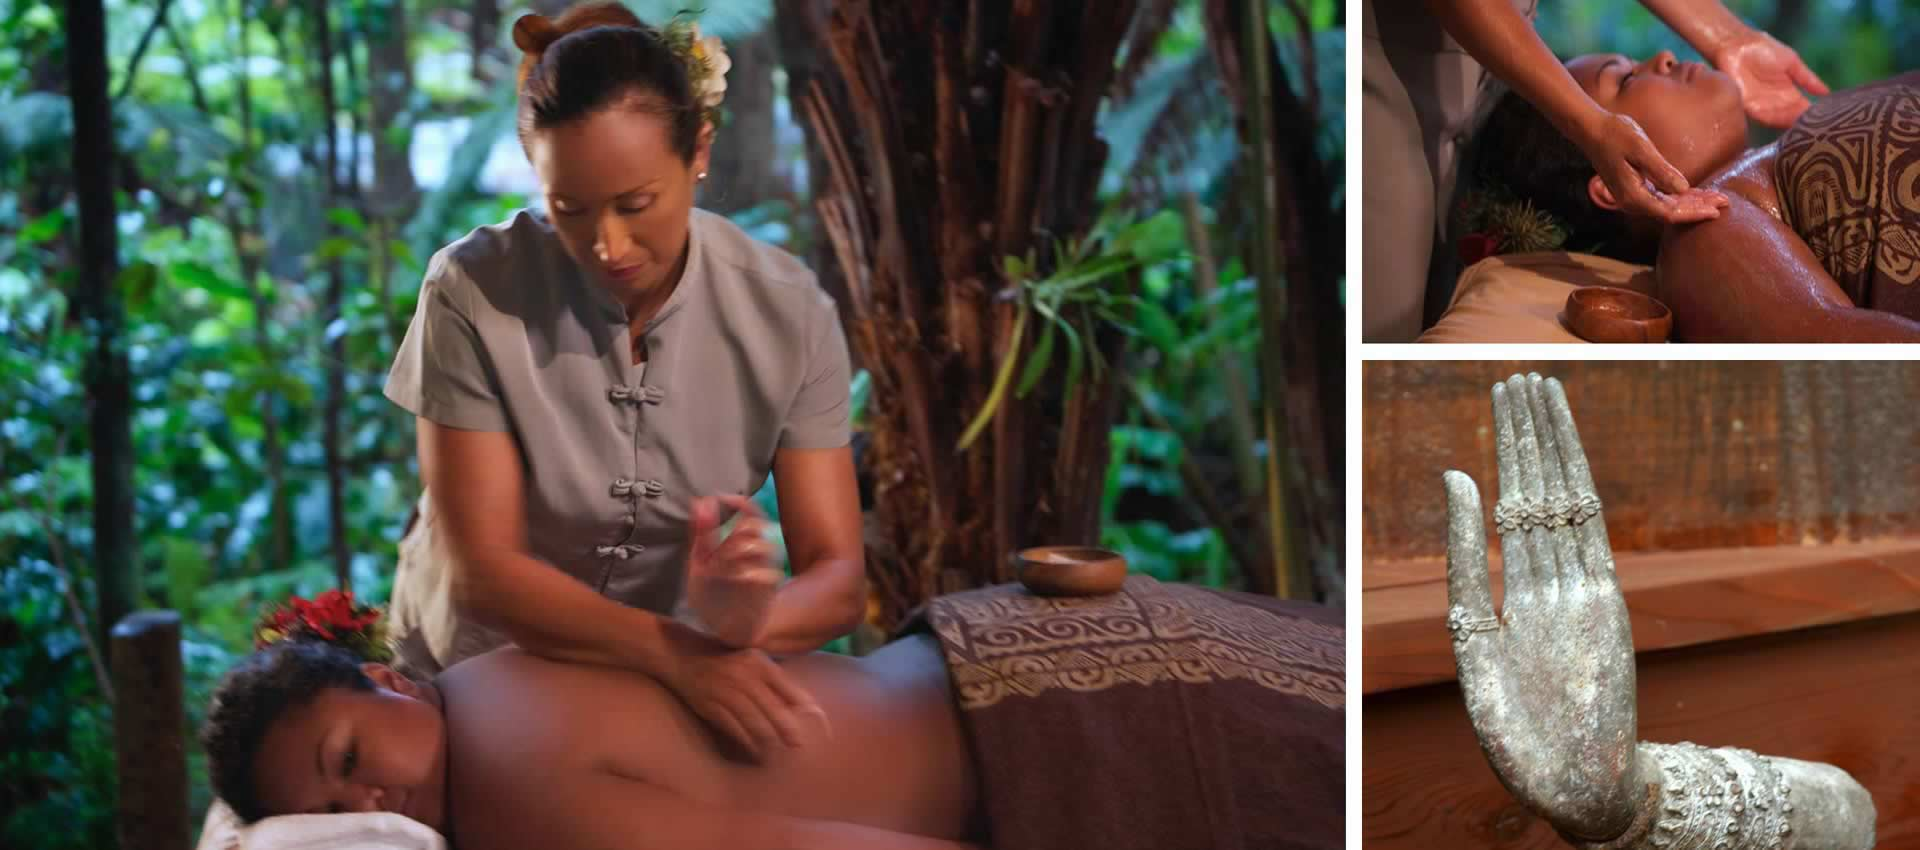 Volcano-Hawaii-massage